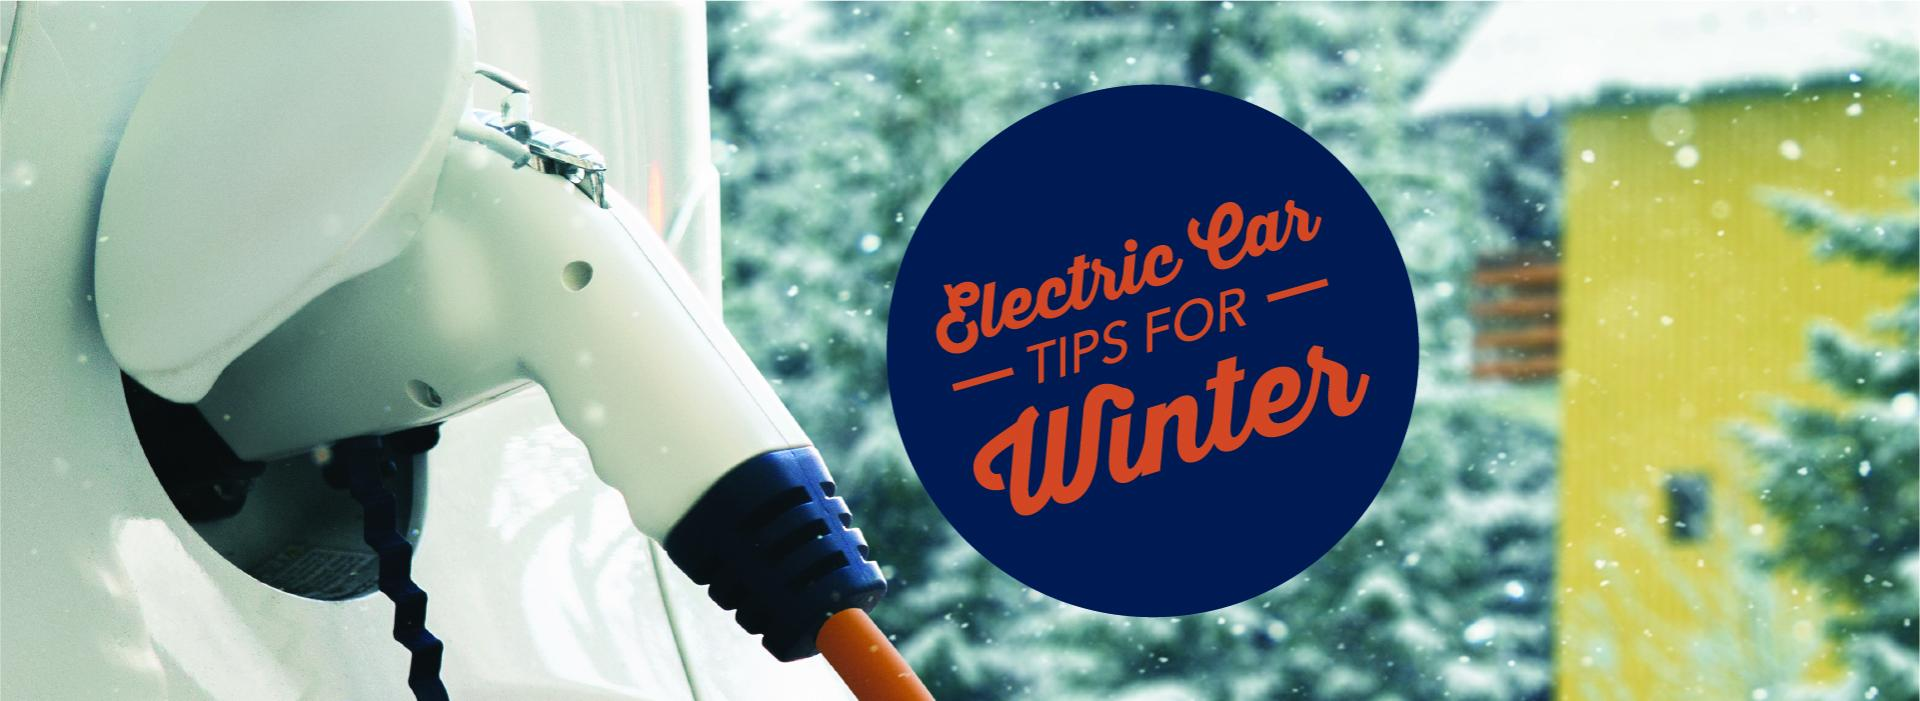 Tips for Electric Vehicles in the Winter